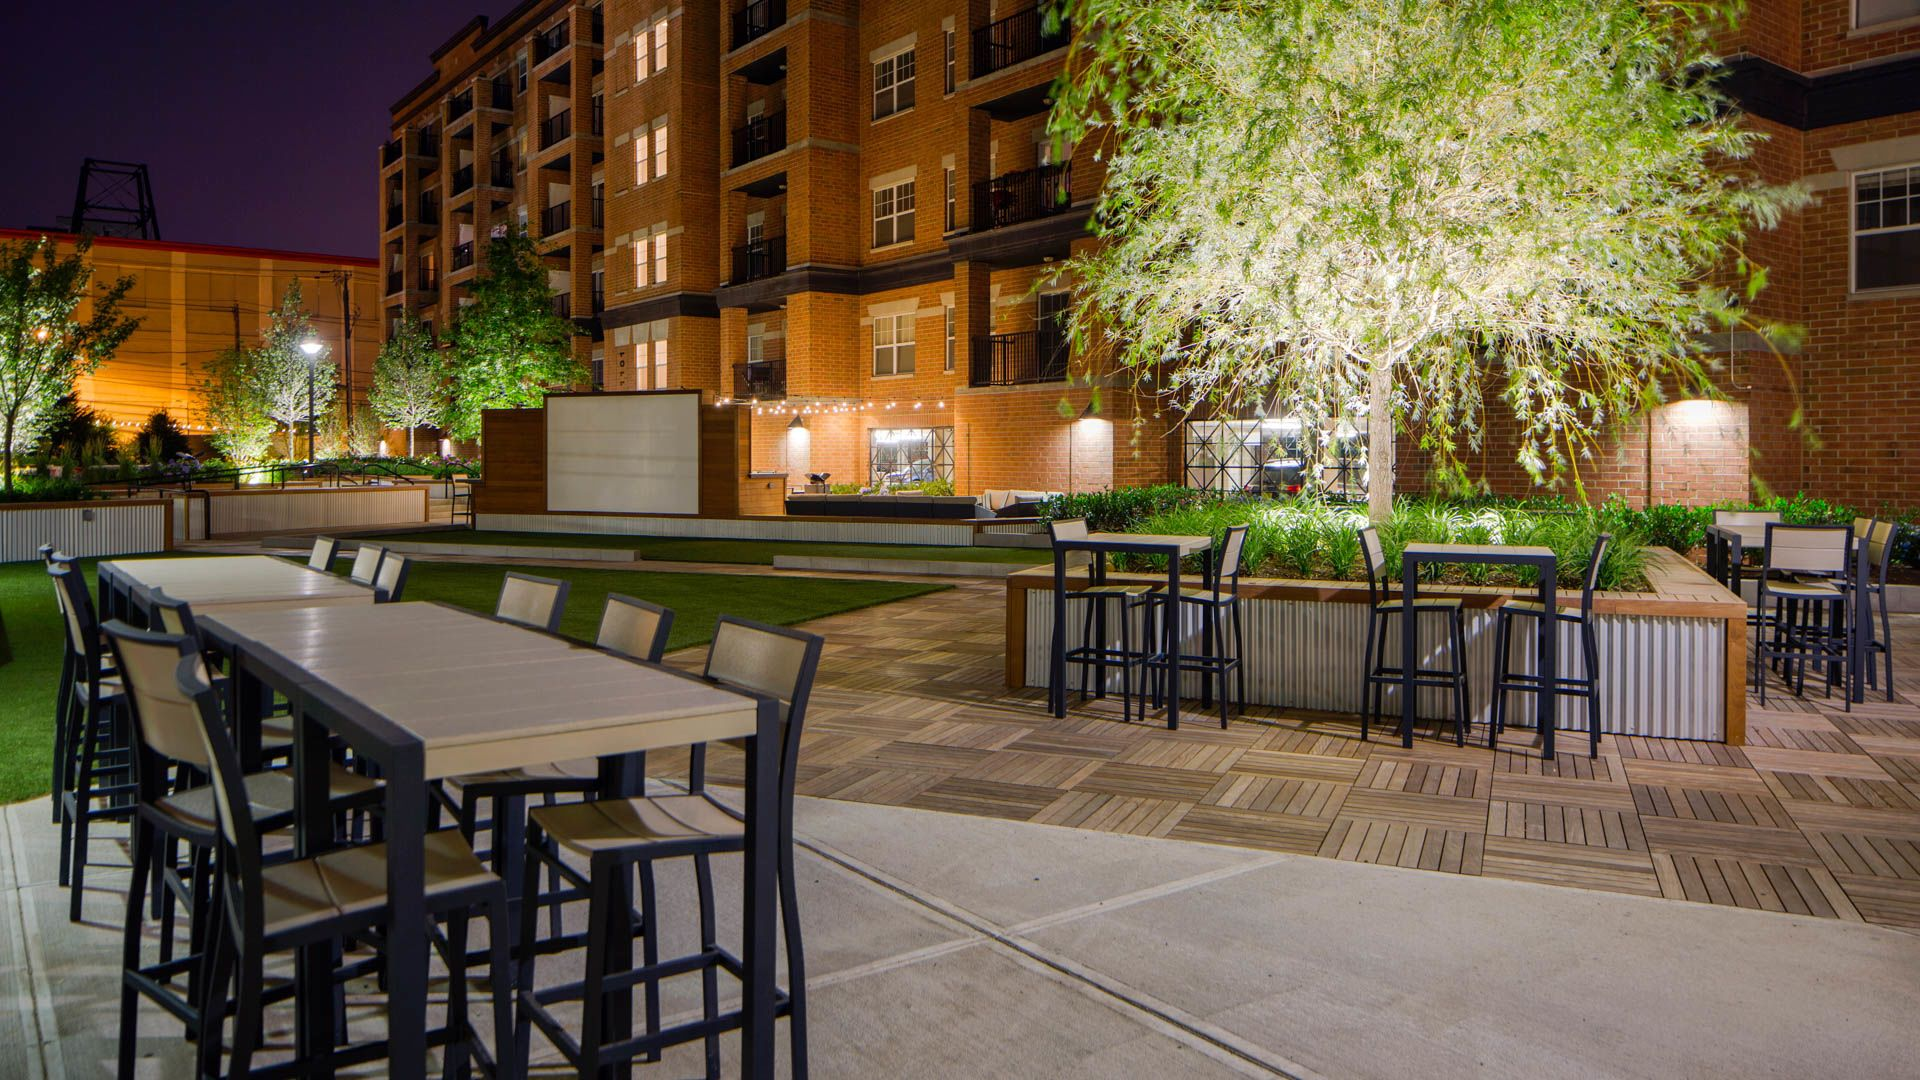 The Rivington Apartments - Outdoor Lounge with Grilling Area